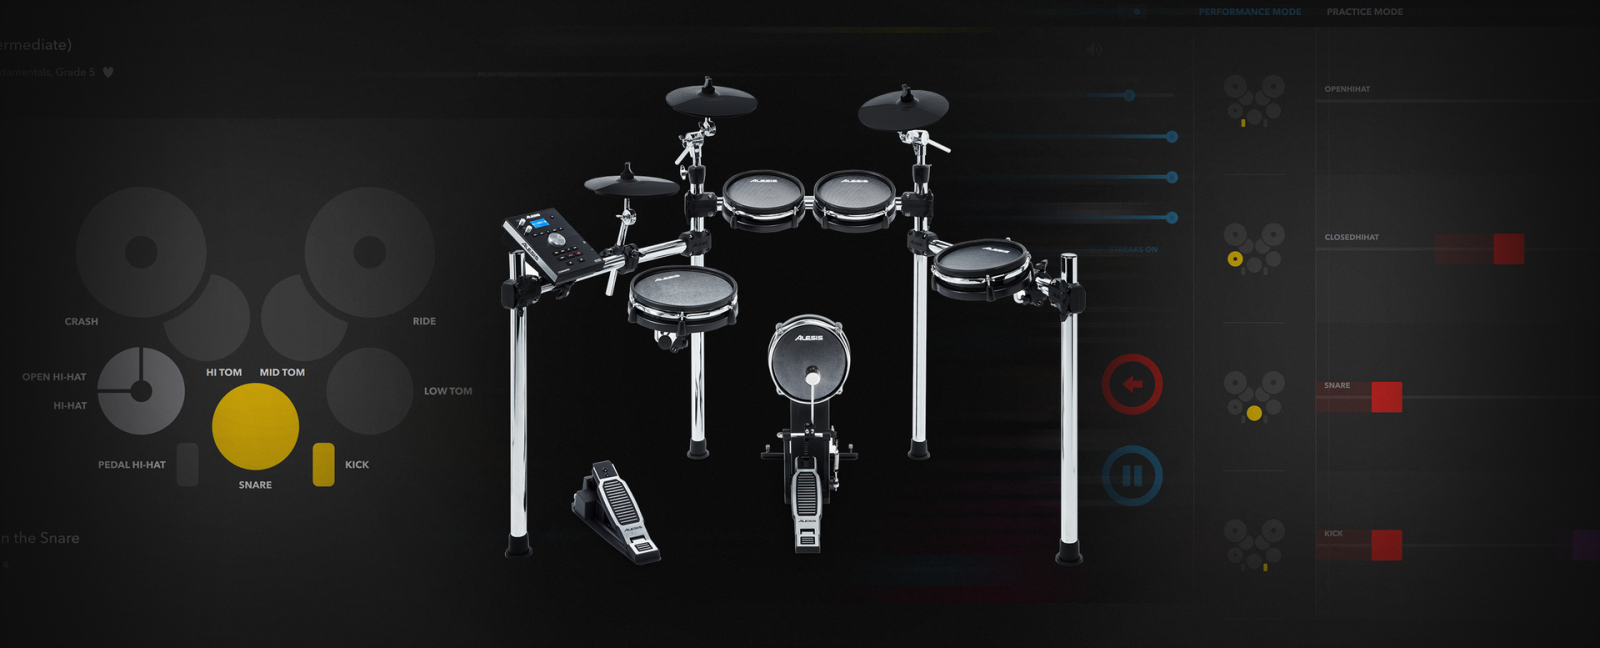 Alesis Drums - How to Redeem 40 Free Bonus Lessons from Melodics